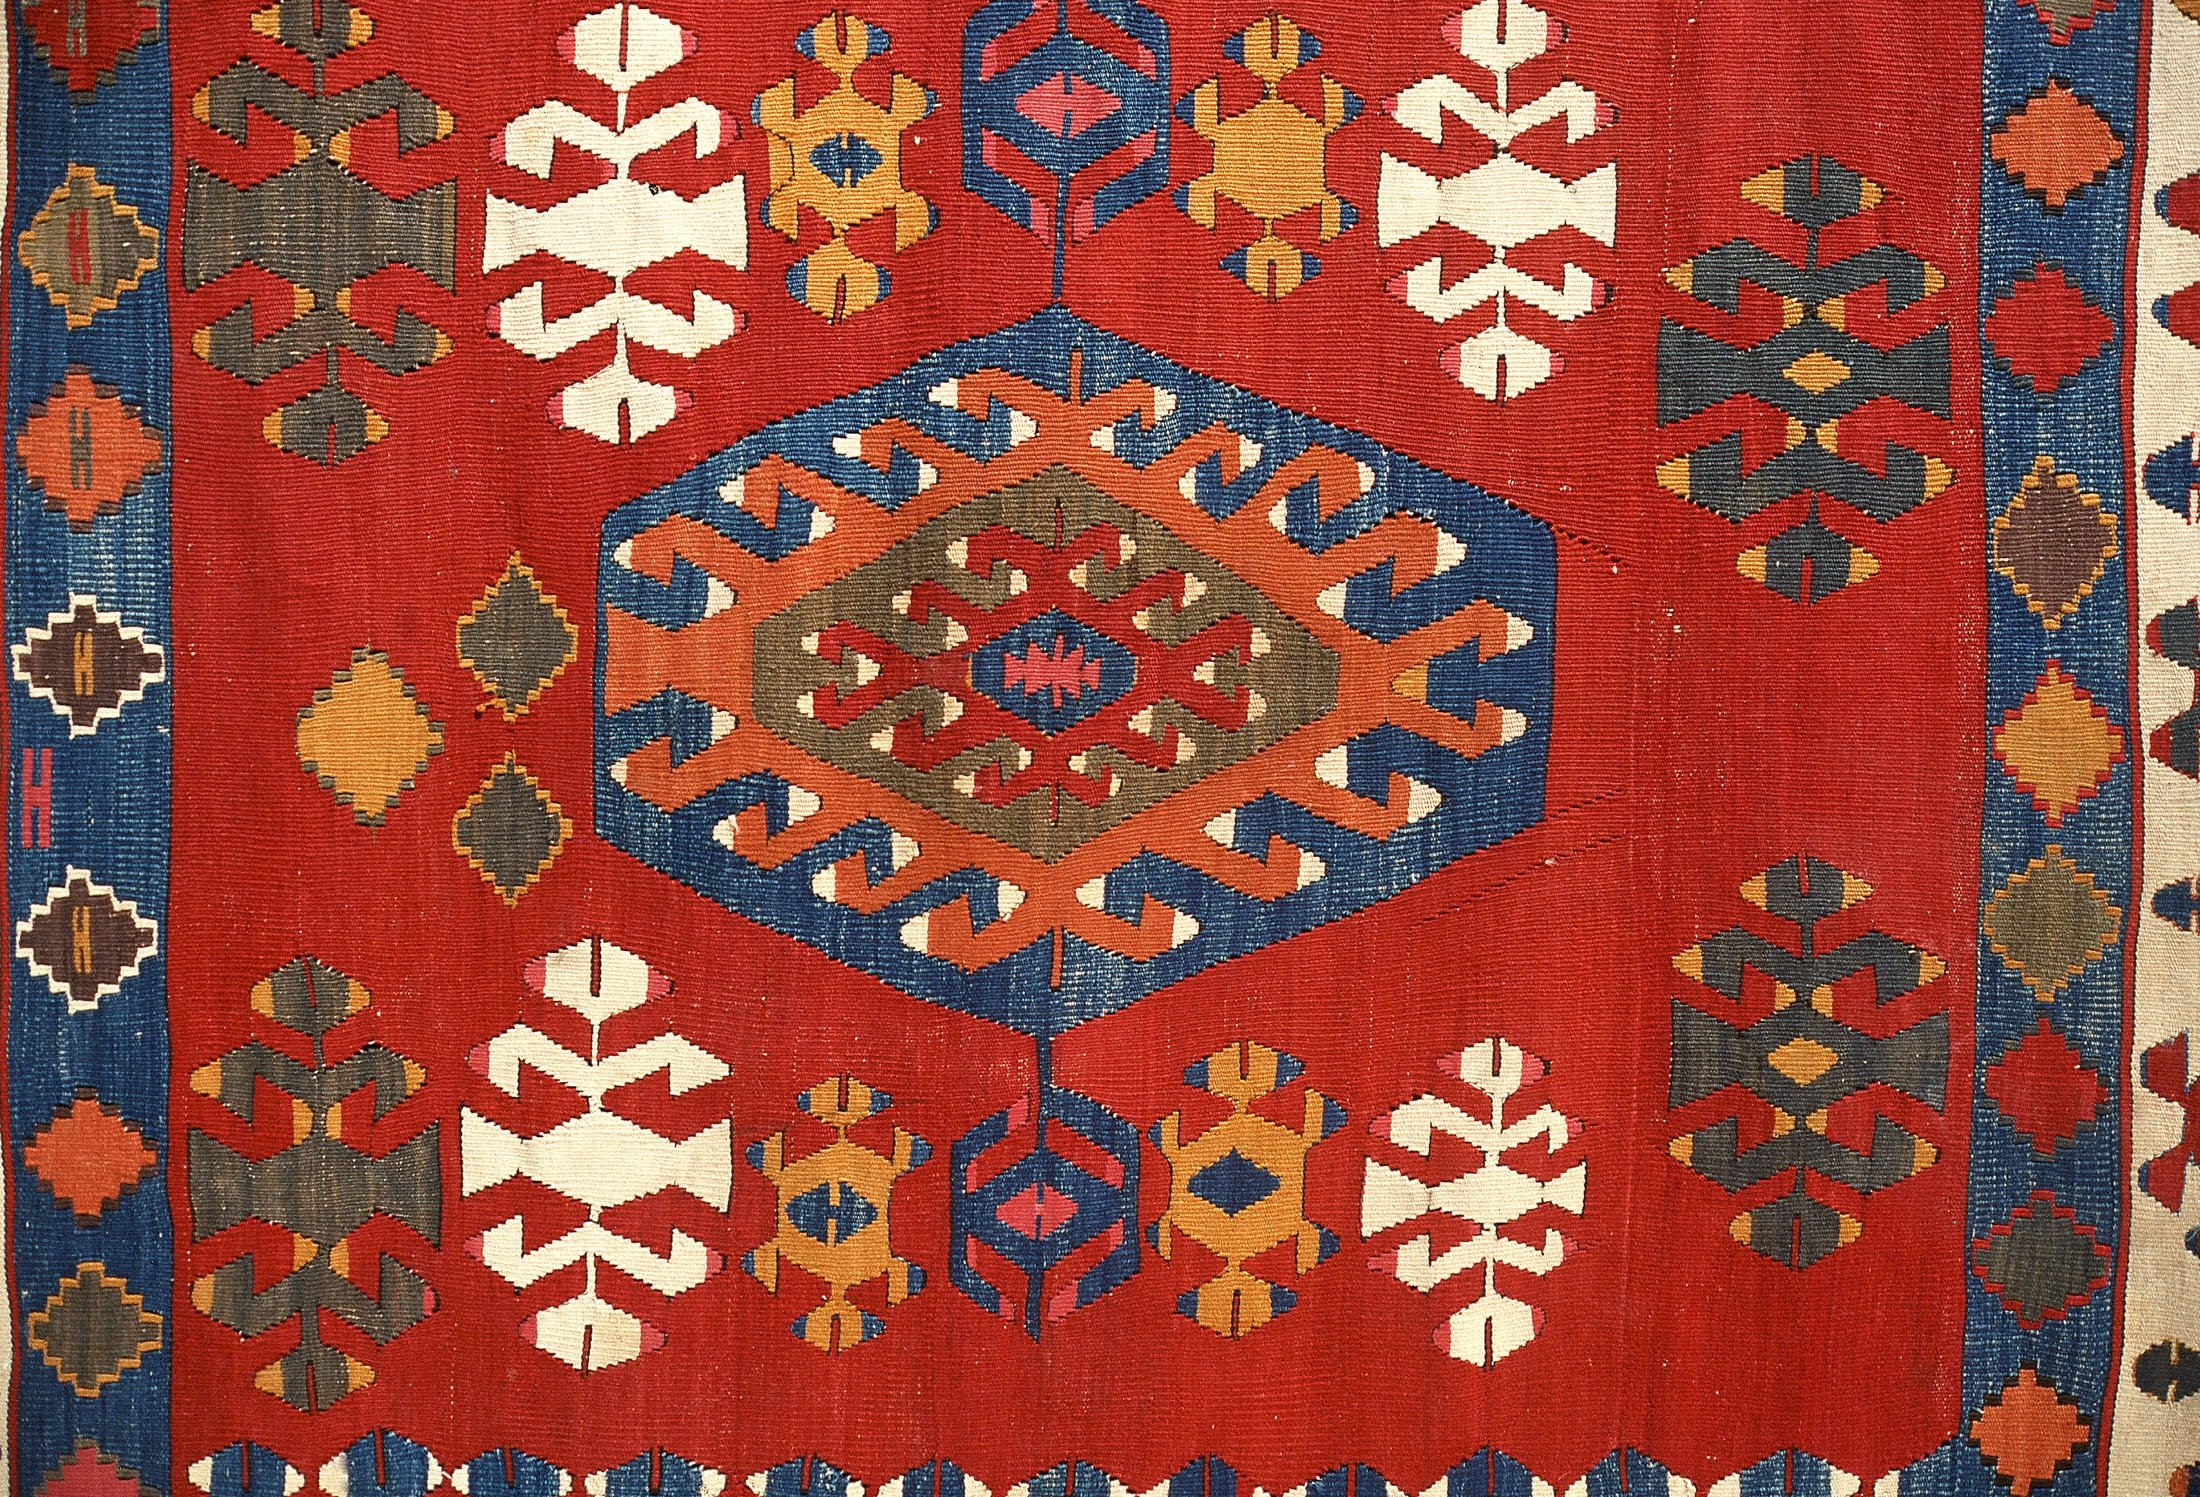 Early 19th-century hand-woven kilim from western Anatolia. (Corbis via Getty Images)